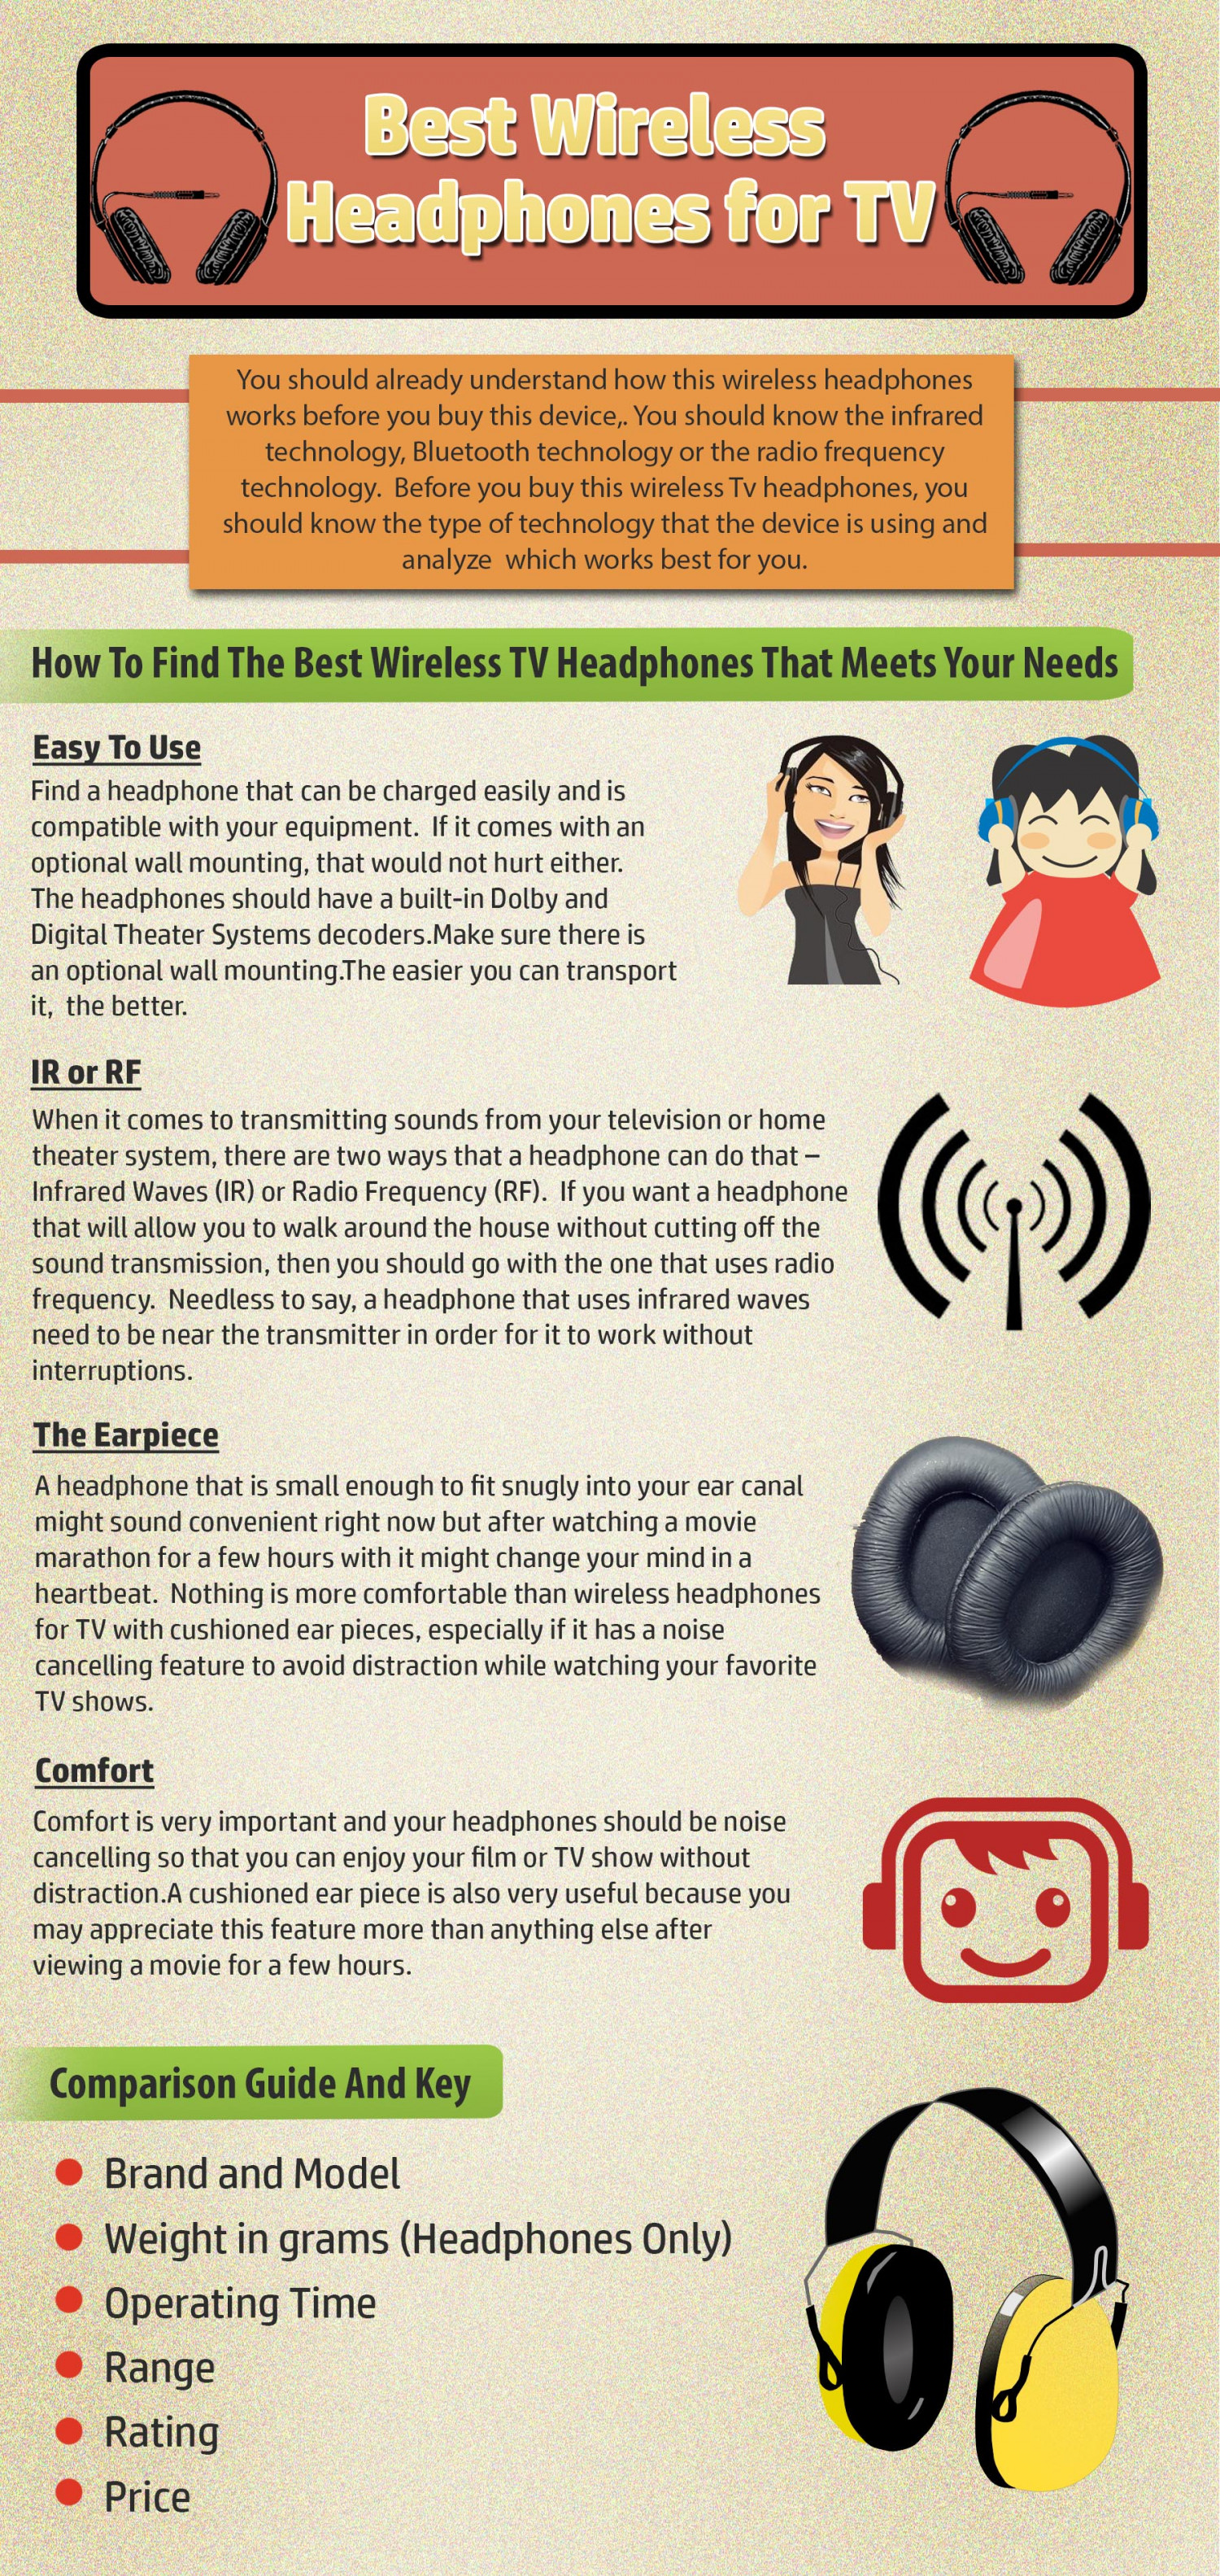 Best Wireless Headphones for TV Infographic